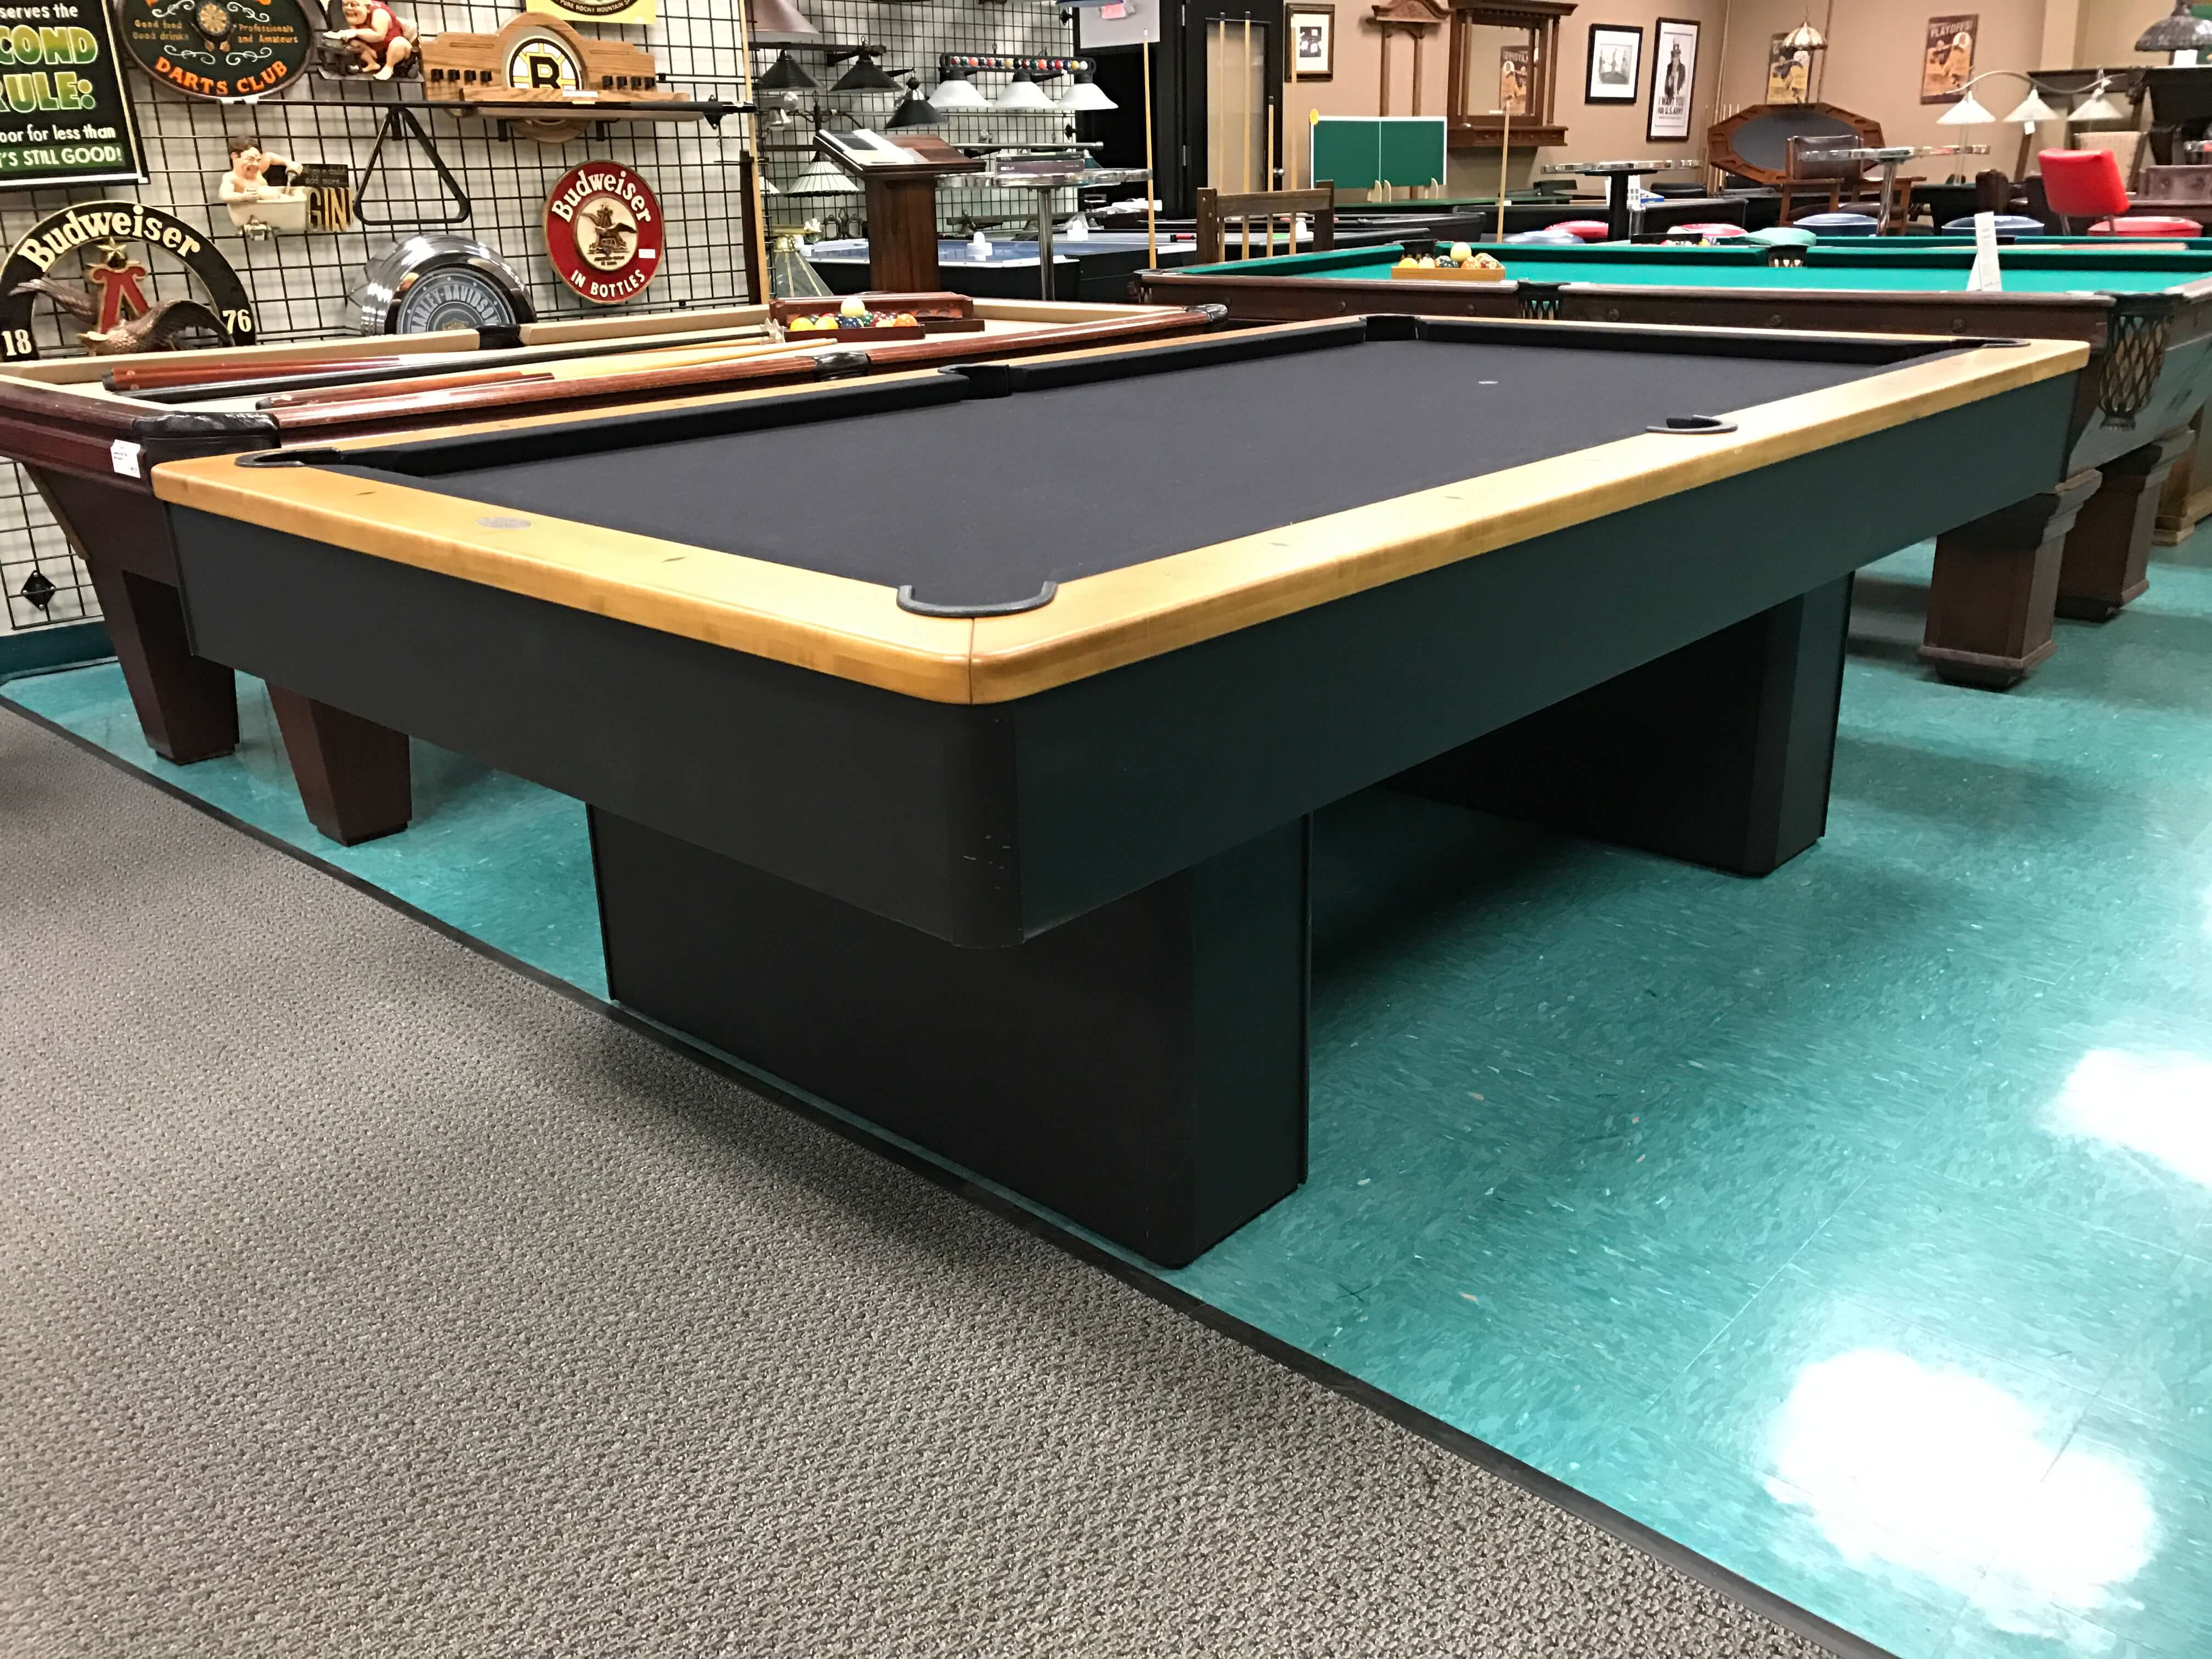 Bars With Pool Tables Raleigh Nc 187 10 Pool Tables For Sale  : Photo Mar 02 6 04 04 PM from abacs.us size 4032 x 3024 jpeg 965kB